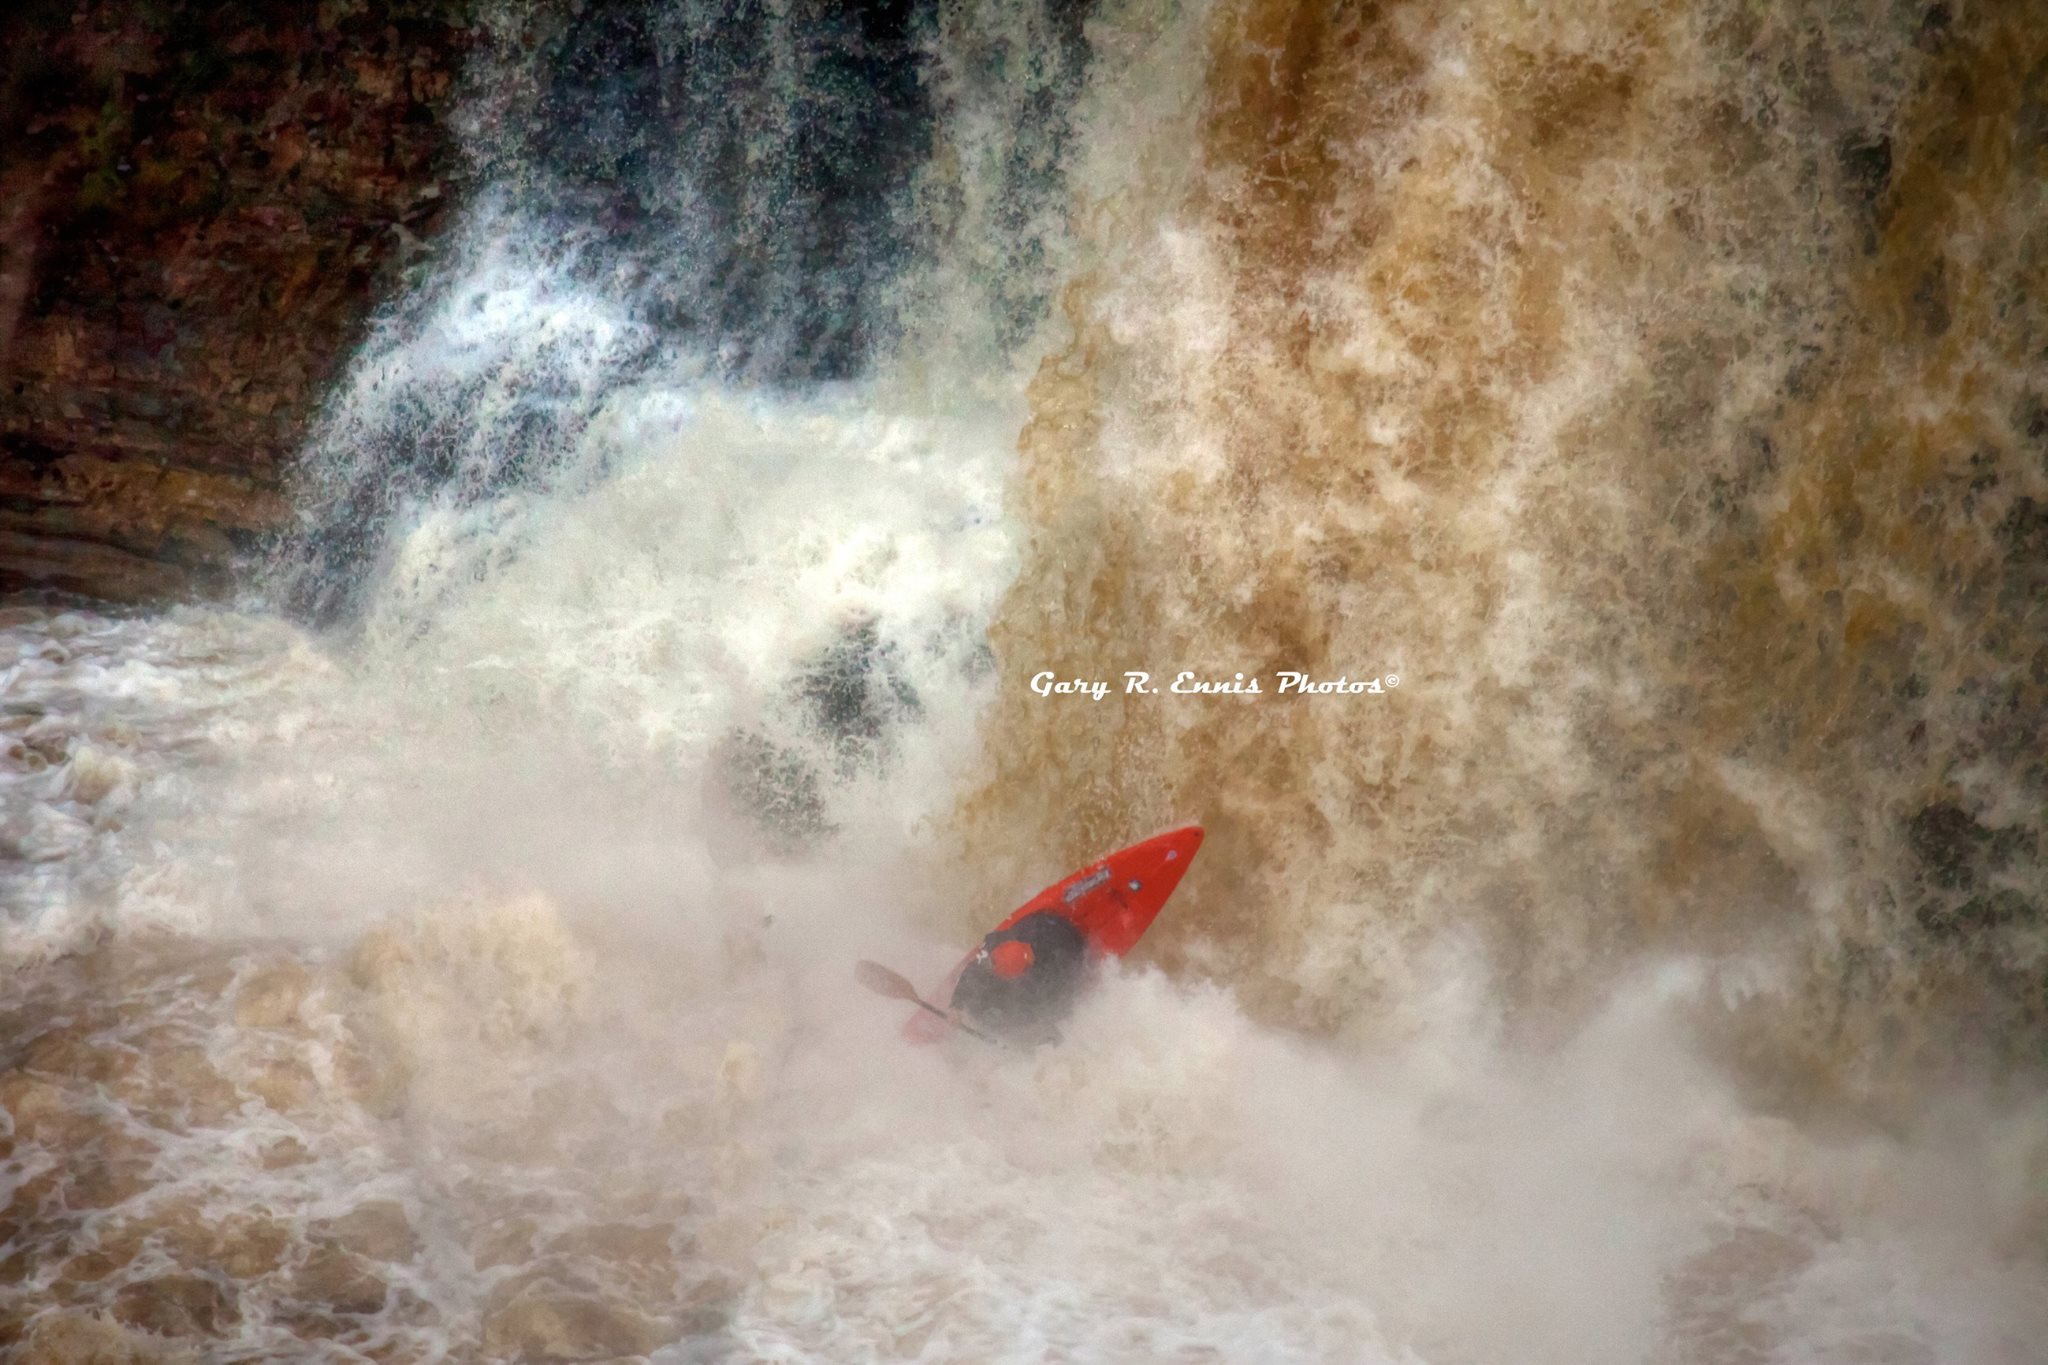 Into the Falls Marcelo Galizio a